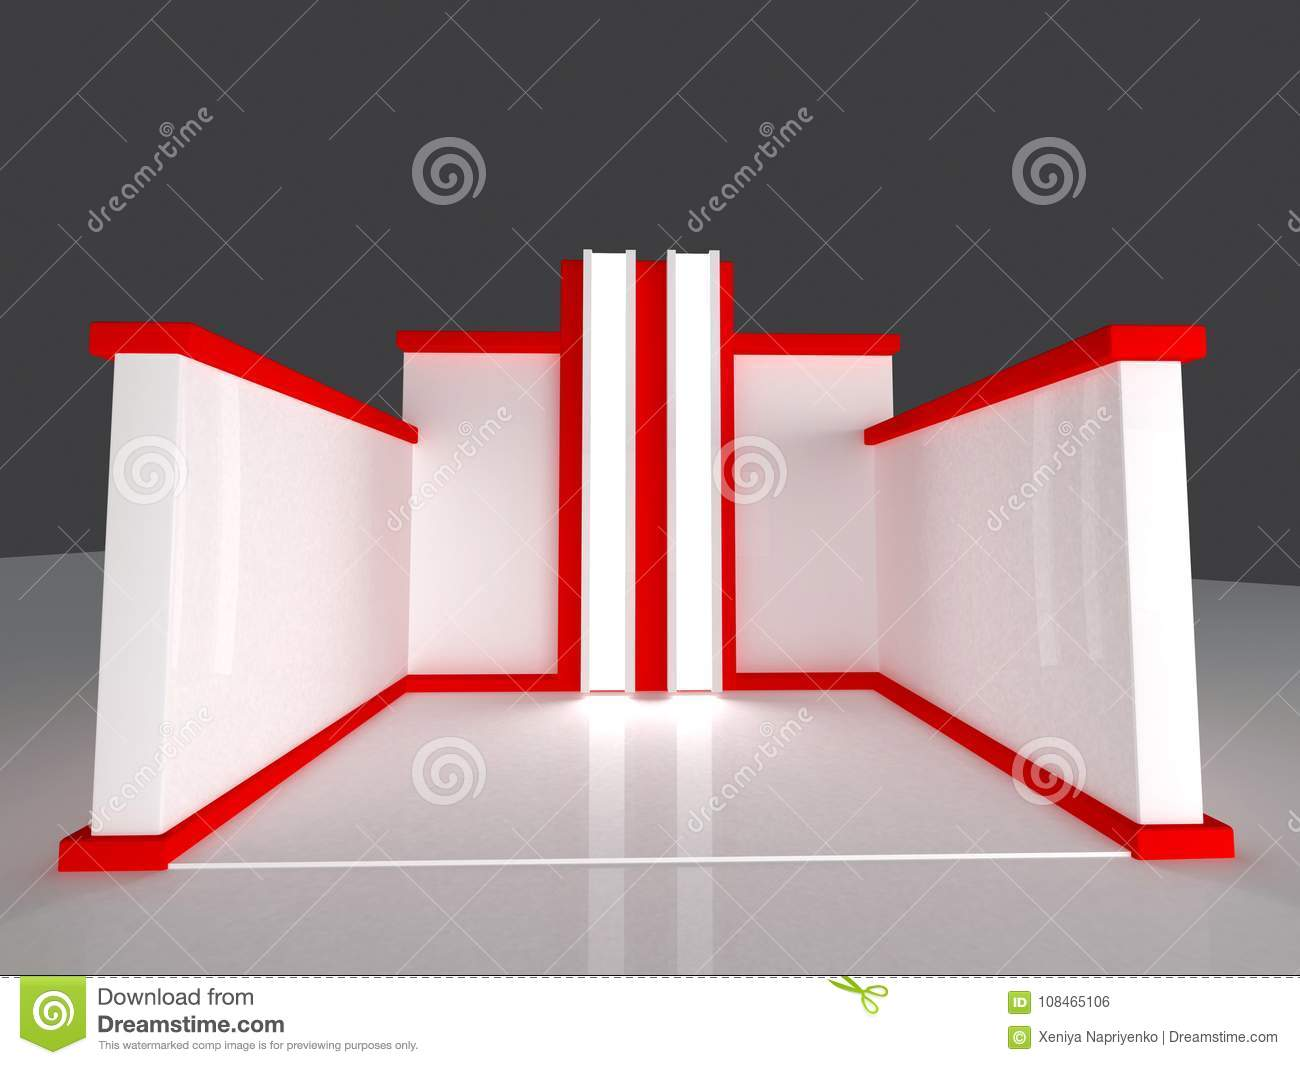 Marketing Exhibition Stands : Red exhibition stand d rendering stock illustration